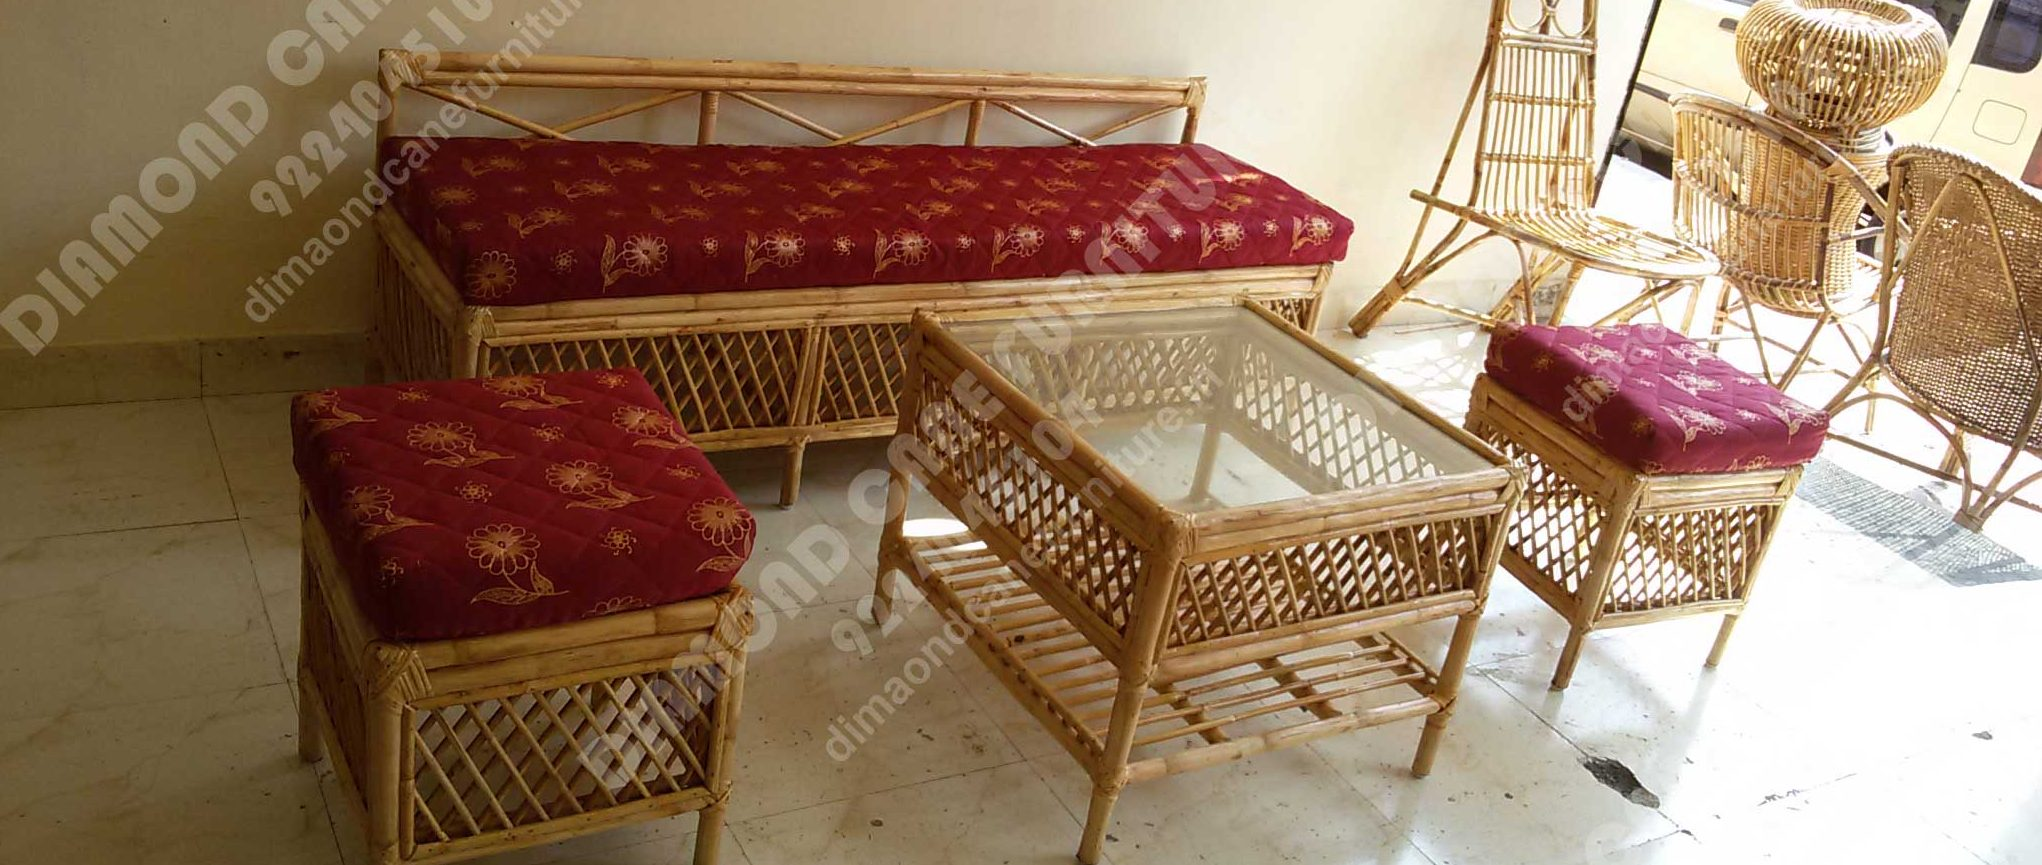 Furniture Design Dewan Interior Design : Dewan set DCF 001 e1462646008170 from queertango.us size 2042 x 865 jpeg 282kB